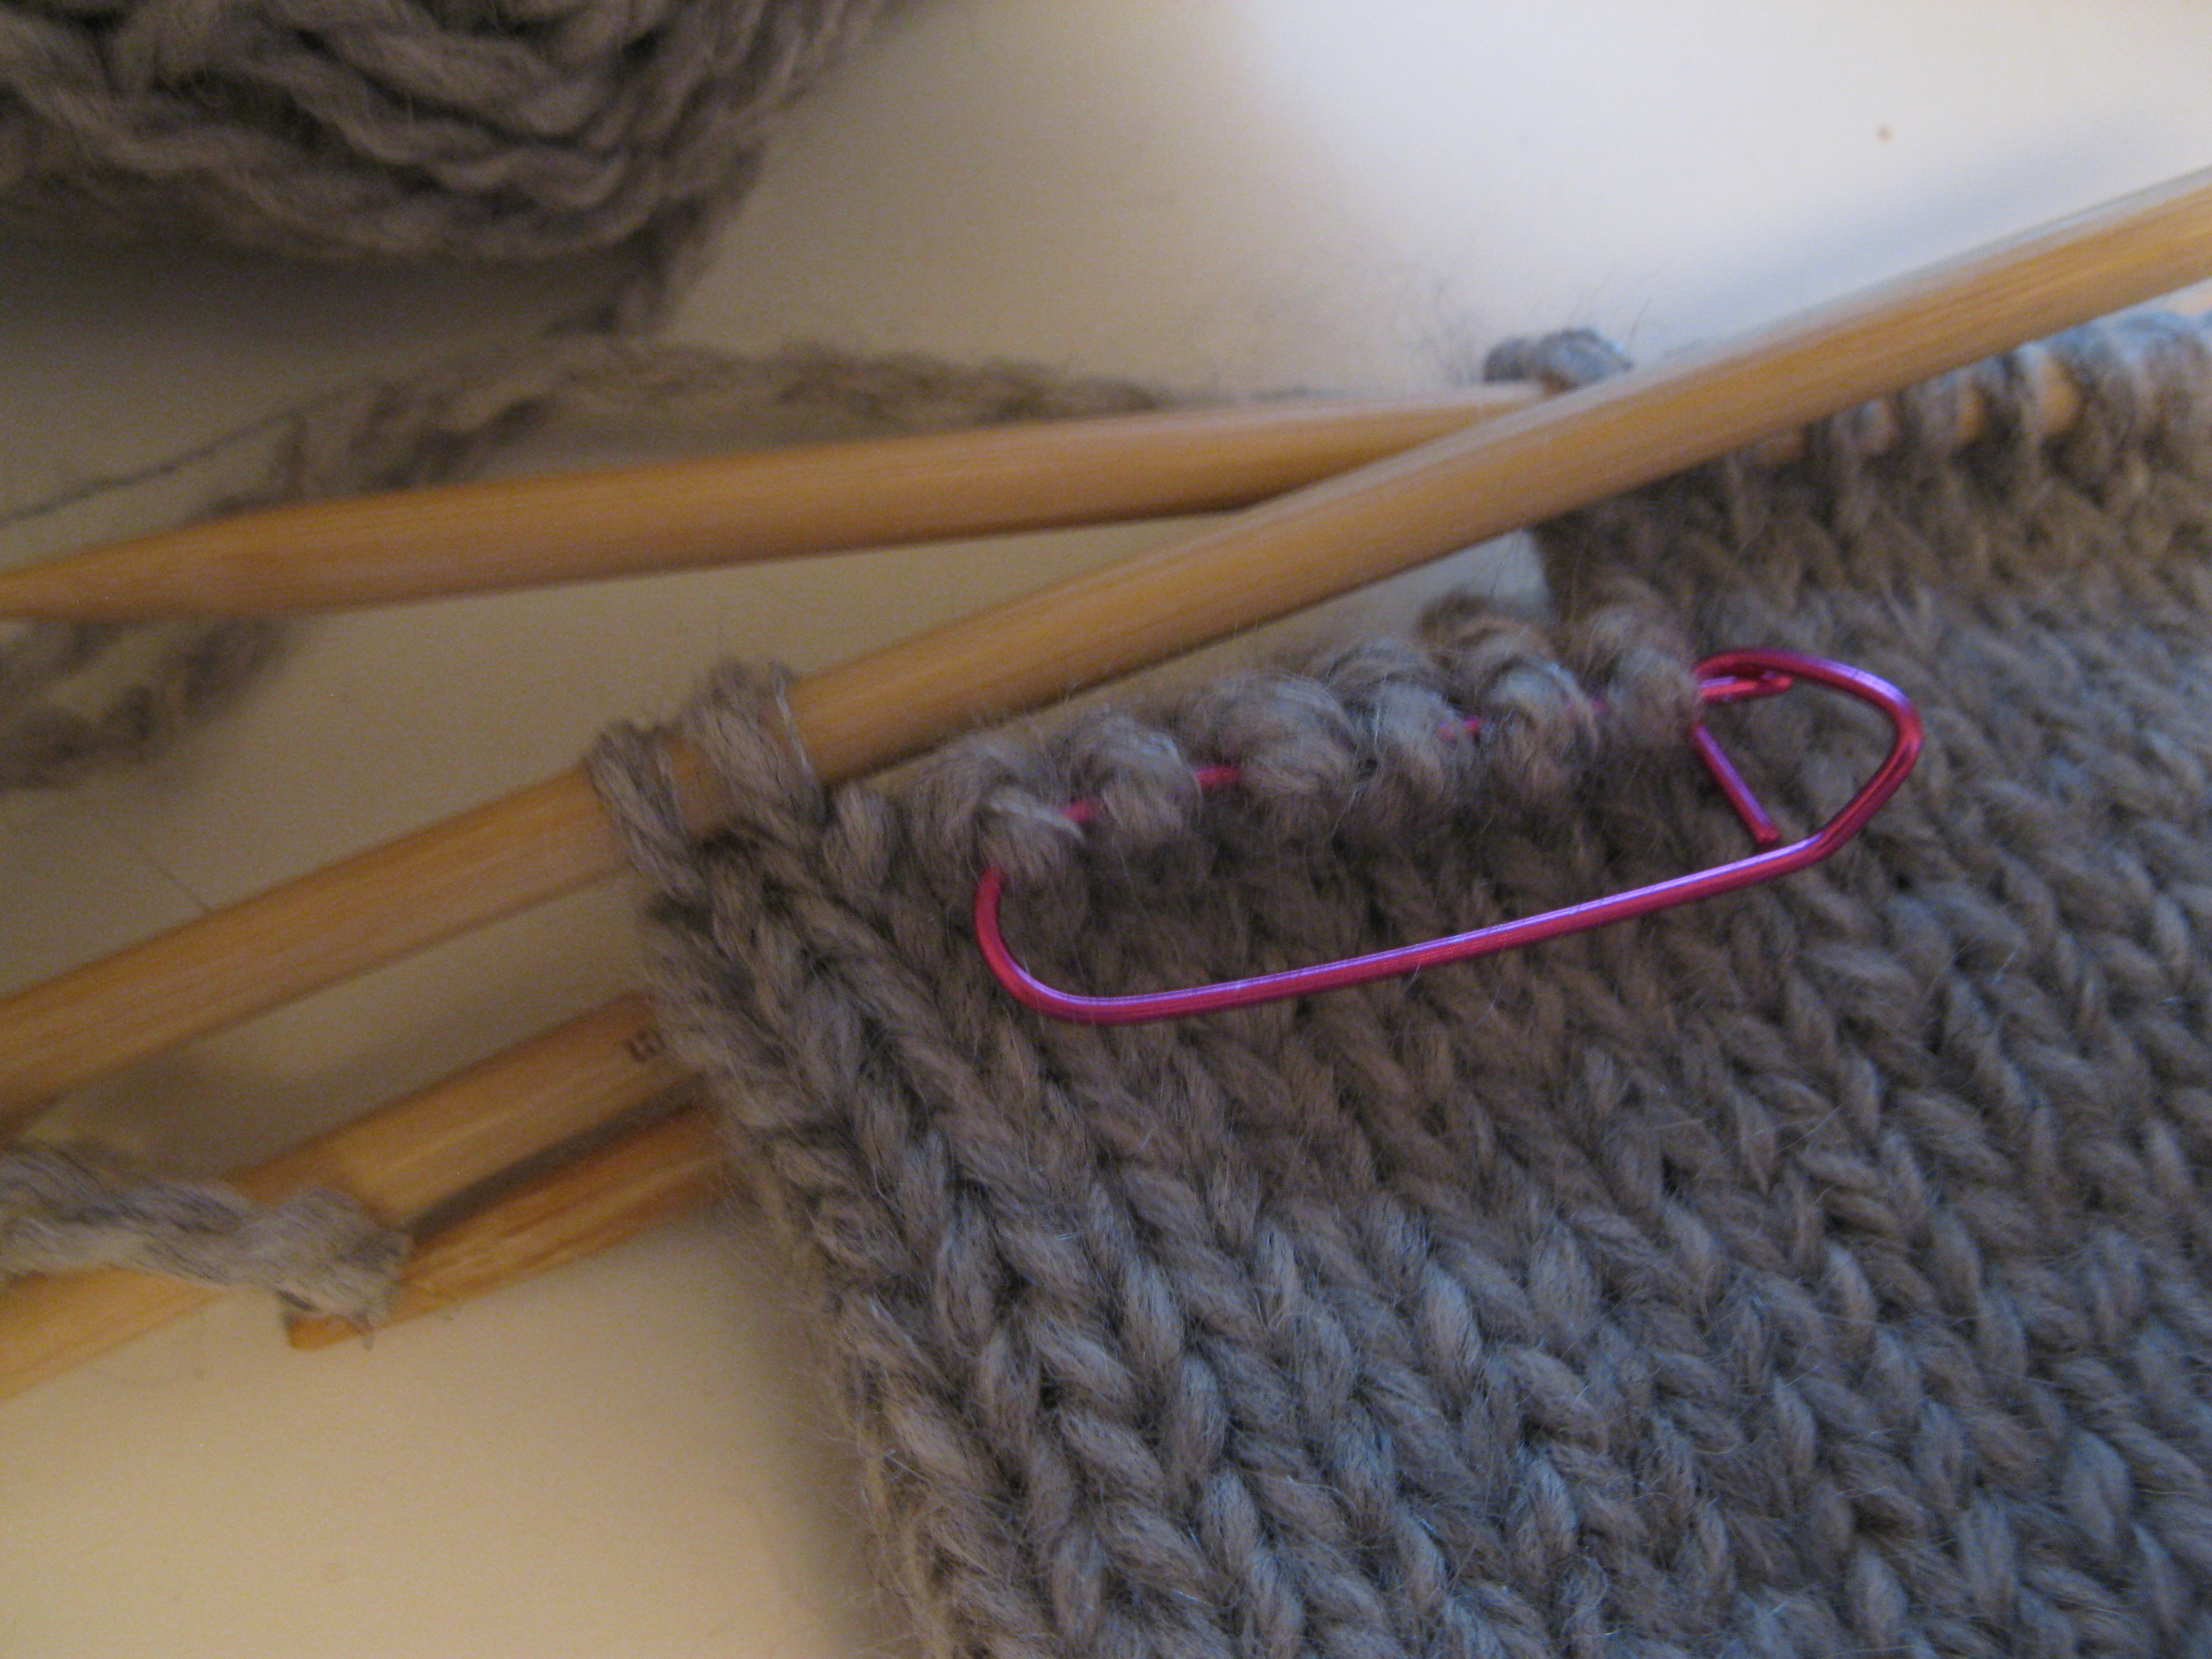 How To Cast On Stitches By Knitting Them On : How To Knit A Basic Mitten   Part 2   Espace Tricot Blog